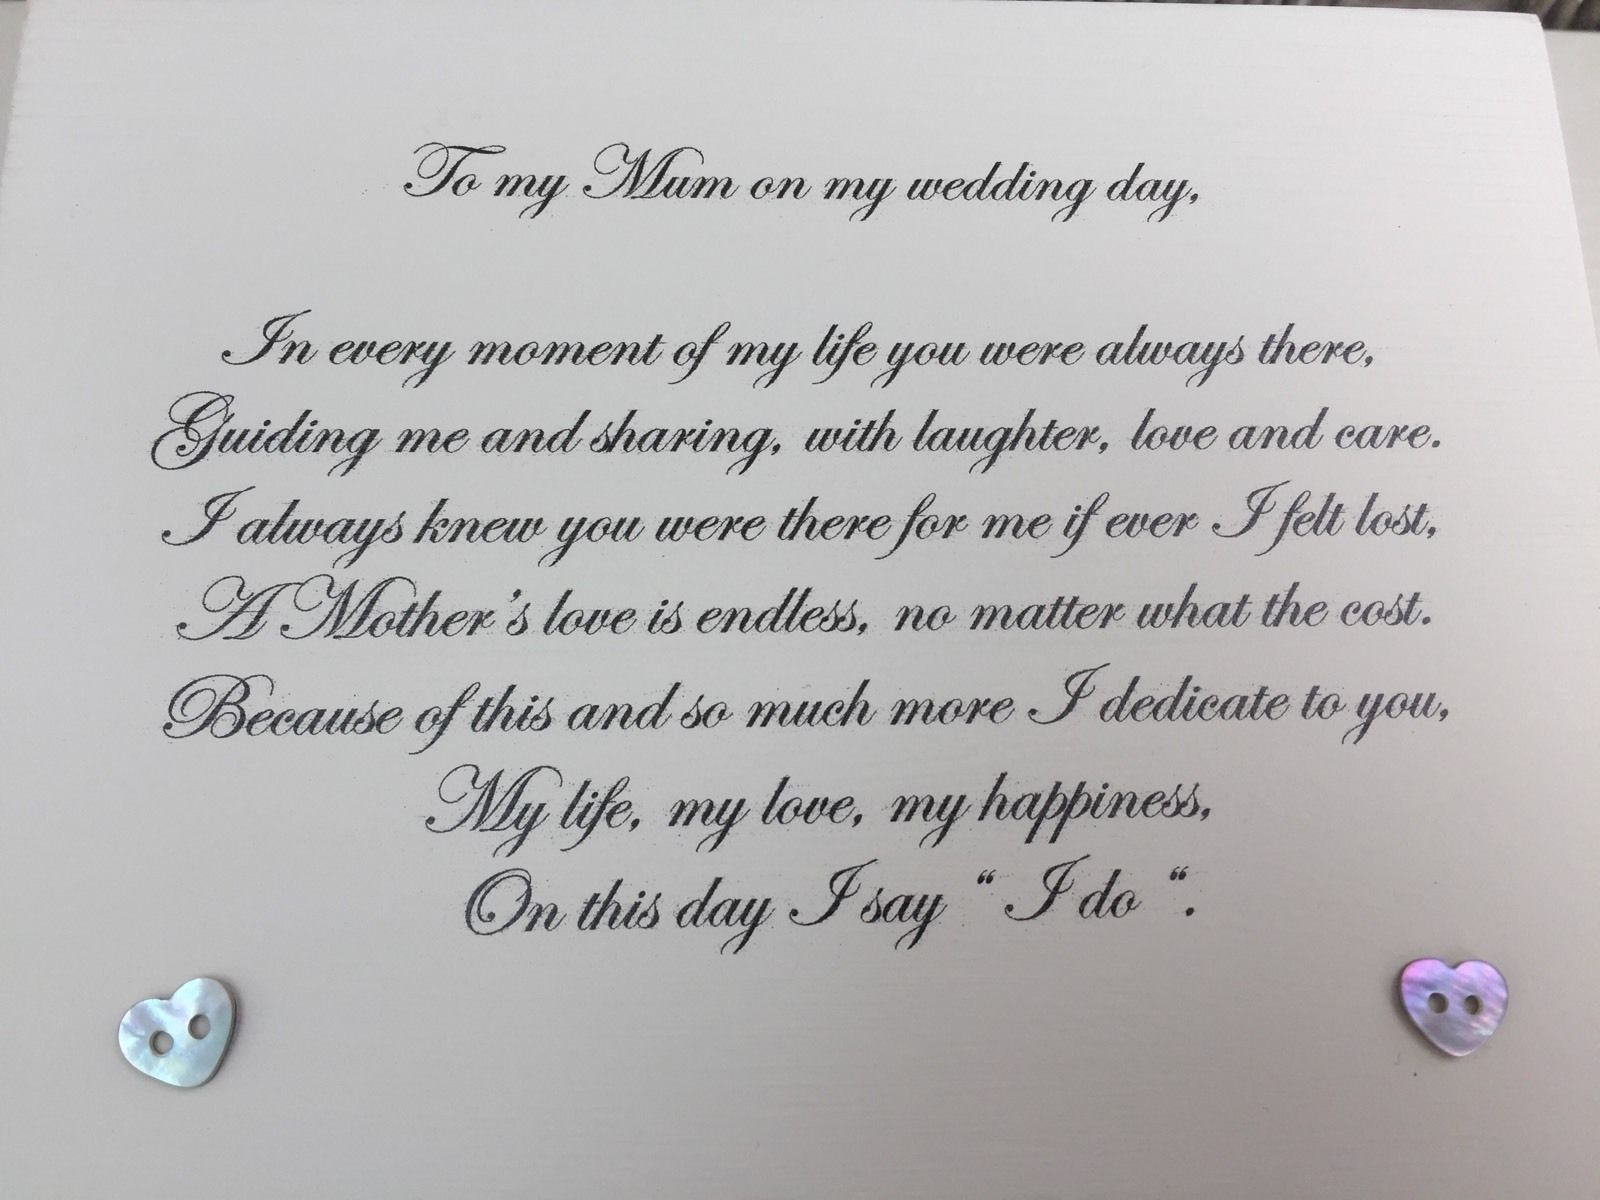 Wedding Day Letter To Bride.Shabby Personalised Chic Mother Of The Bride Wedding Day